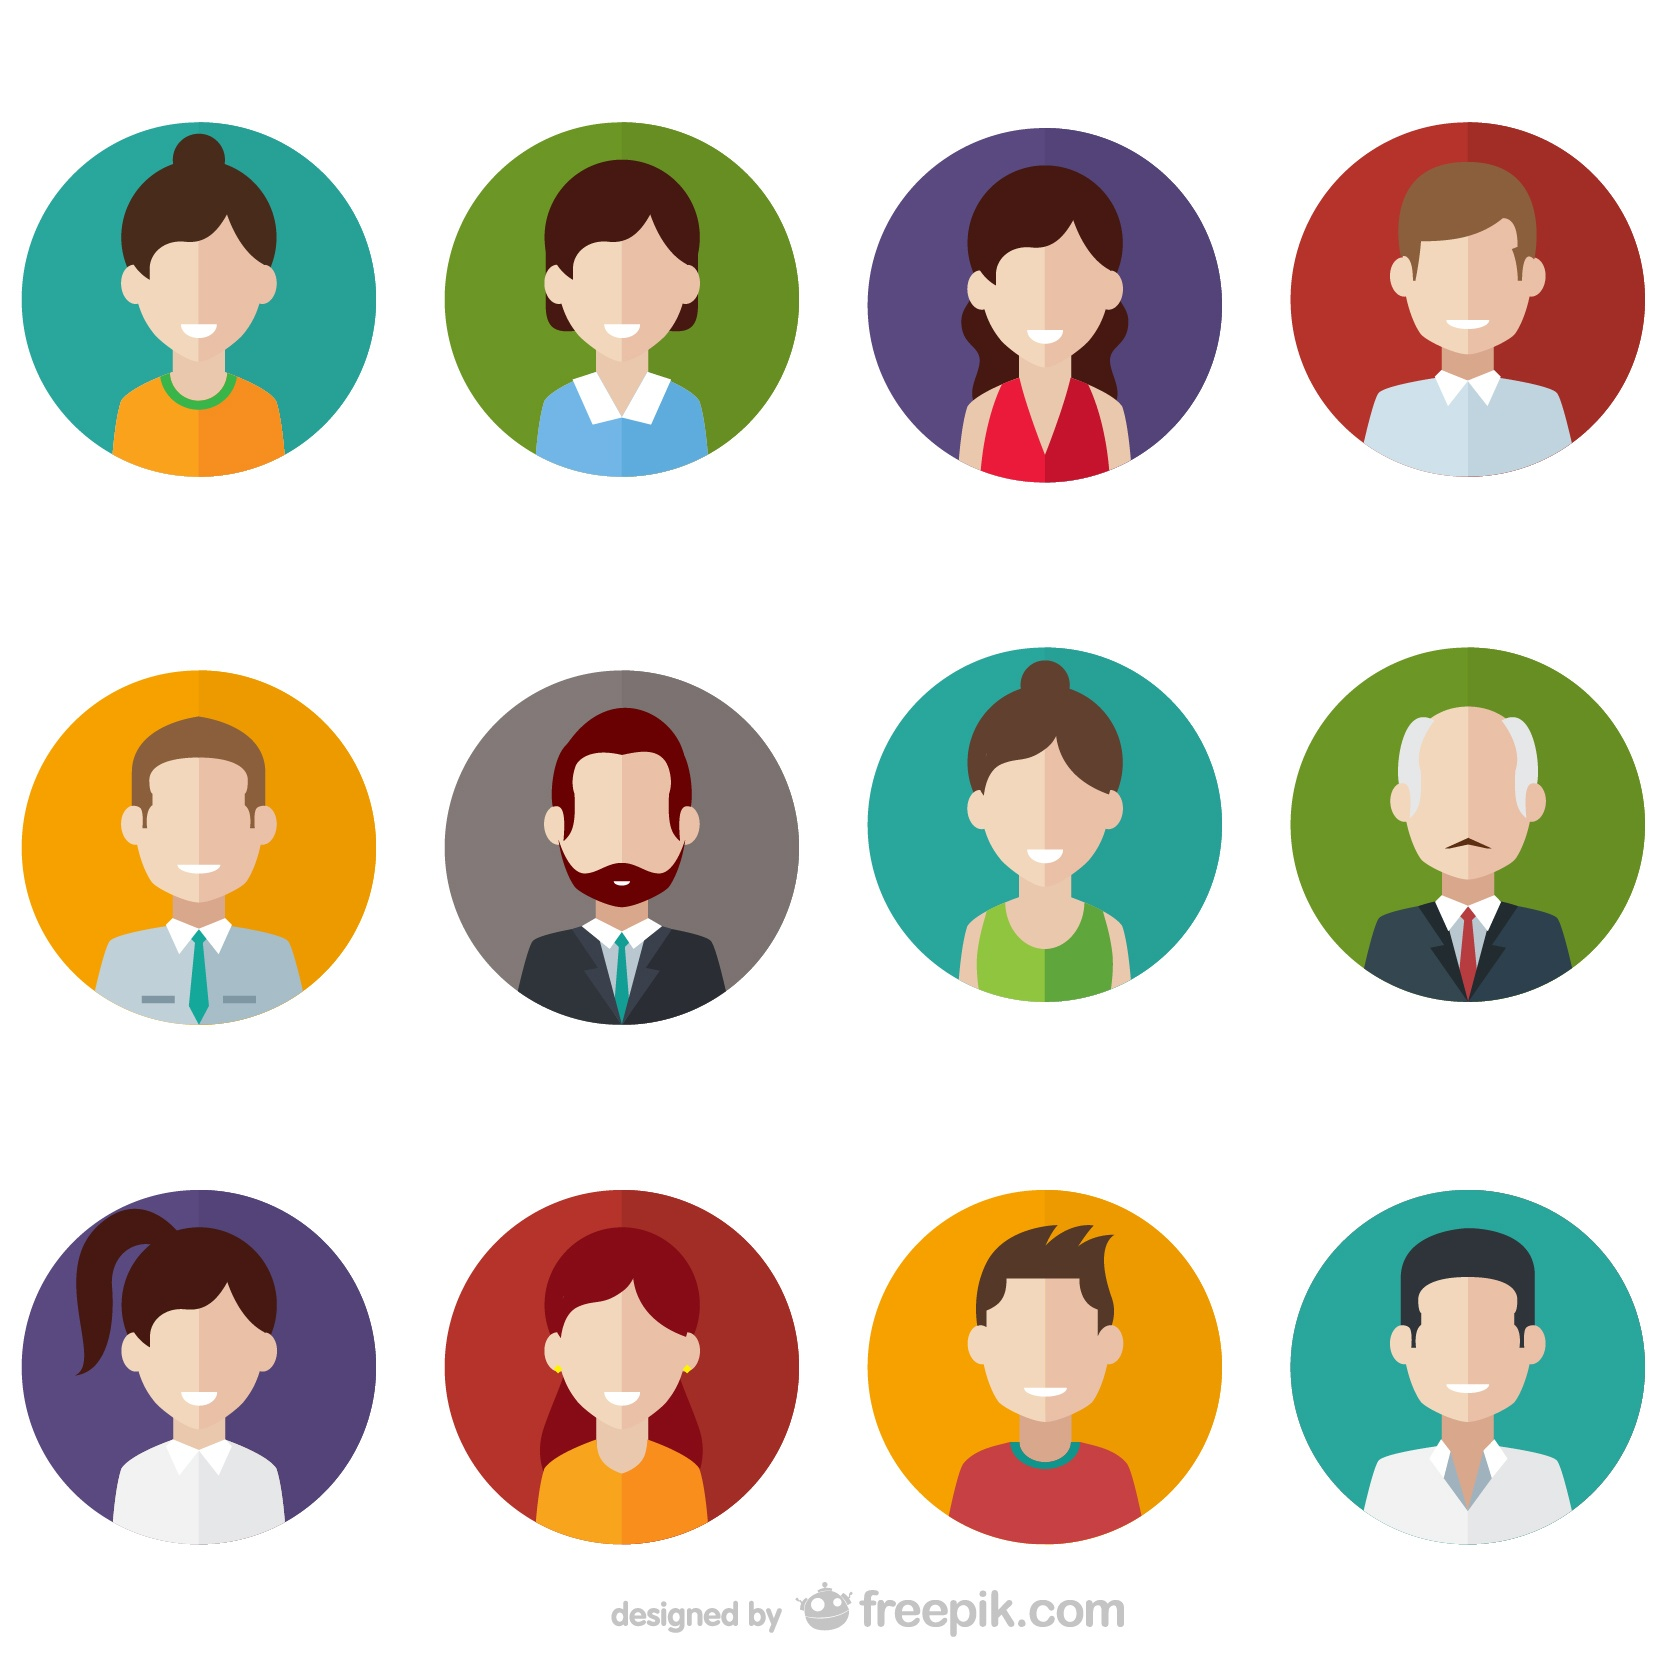 clip royalty free download Staff clipart office personnel. Free download clip art